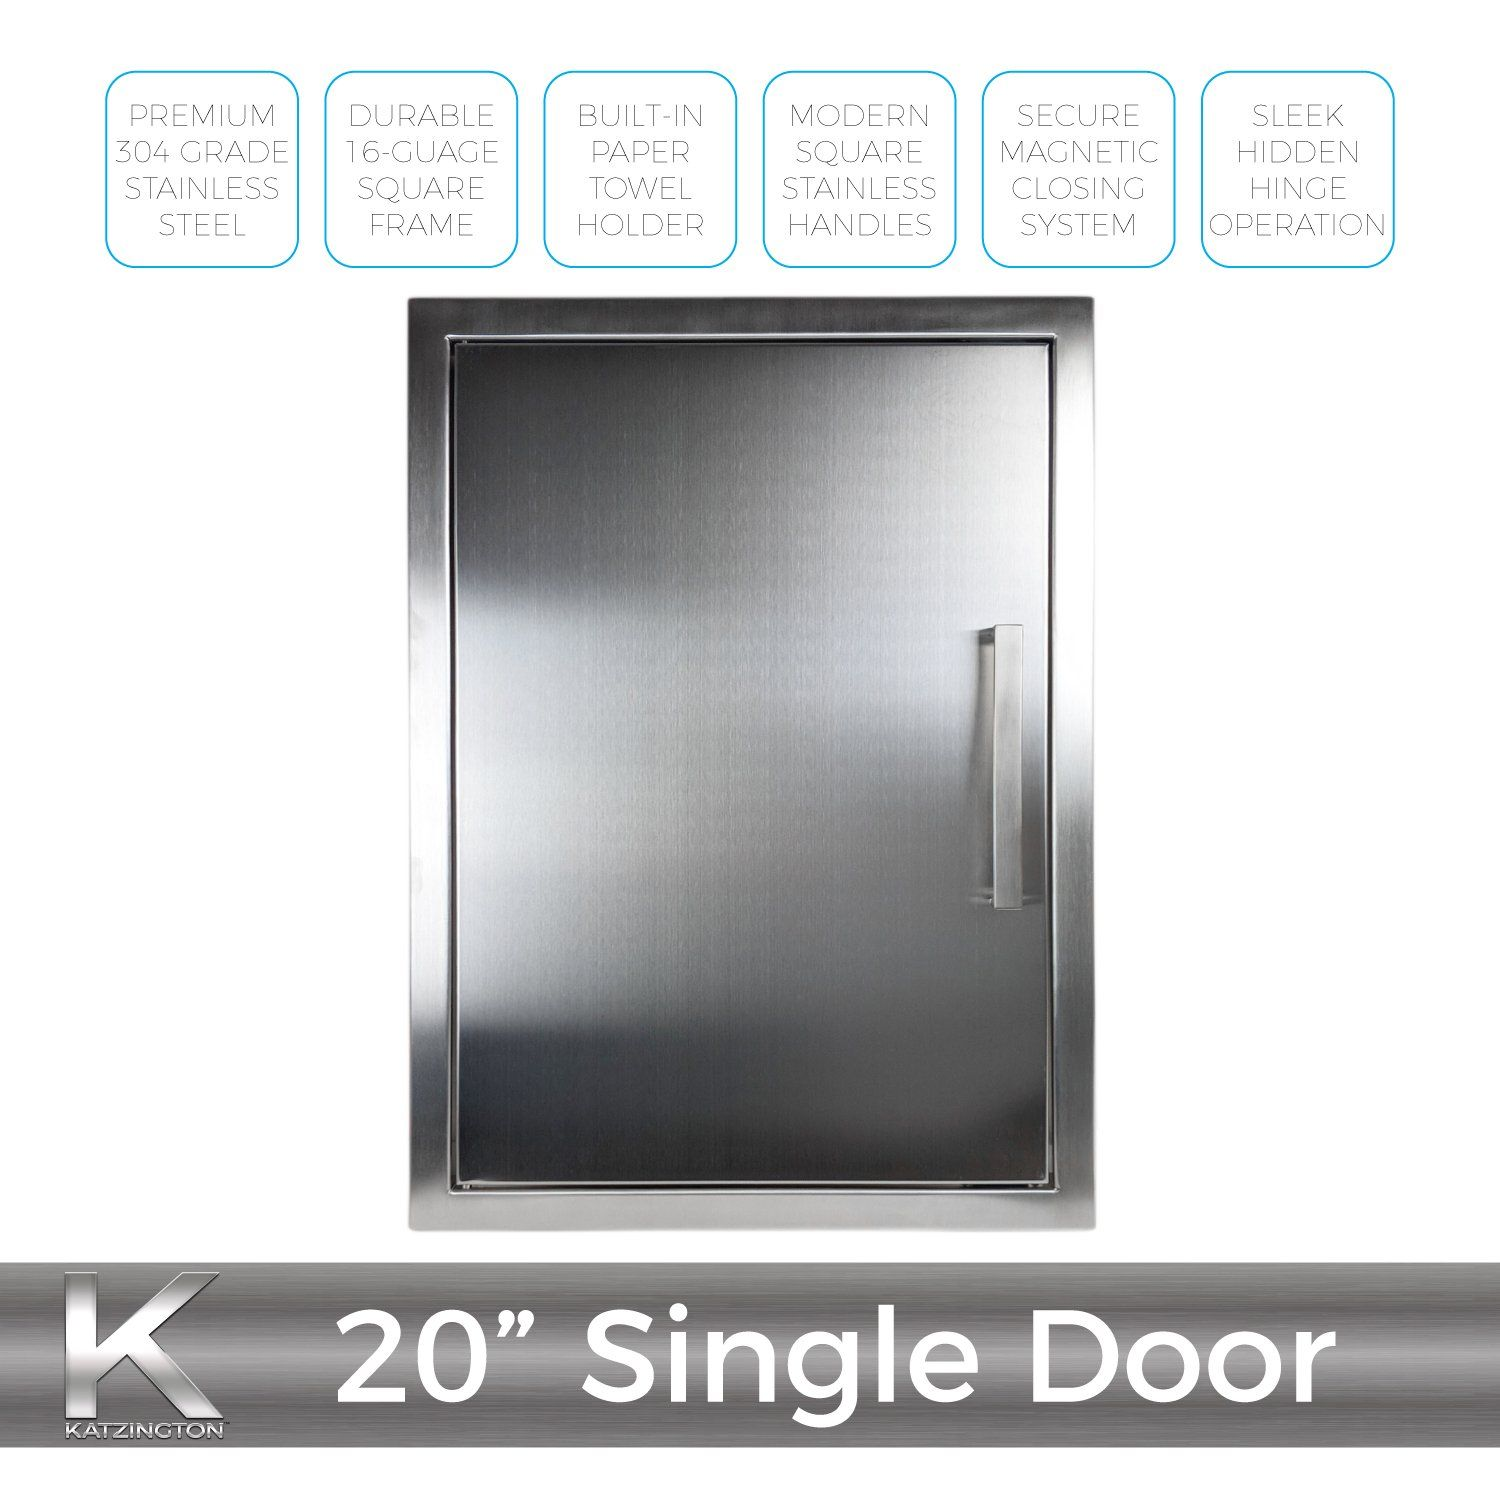 Katzington Bbq Access Door Modern Style 17 X 24 304 Grade Stainless Steel Double Walled Construction Barbecue Island Outdoor Storage Propane Tank Storage